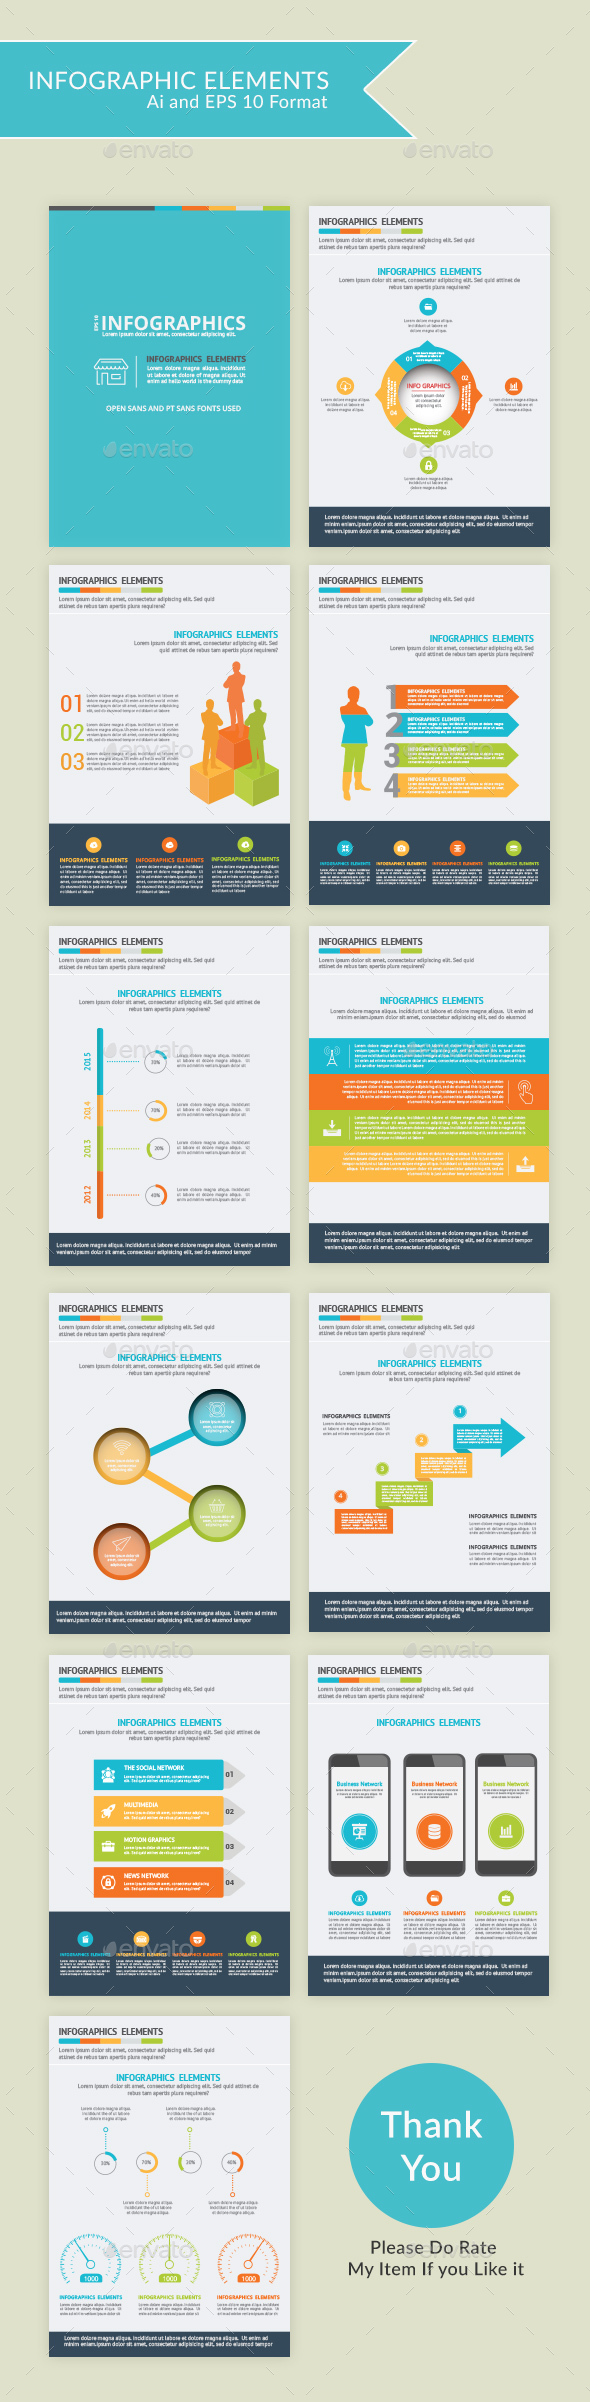 Modern Infographic Elements - 10 pages